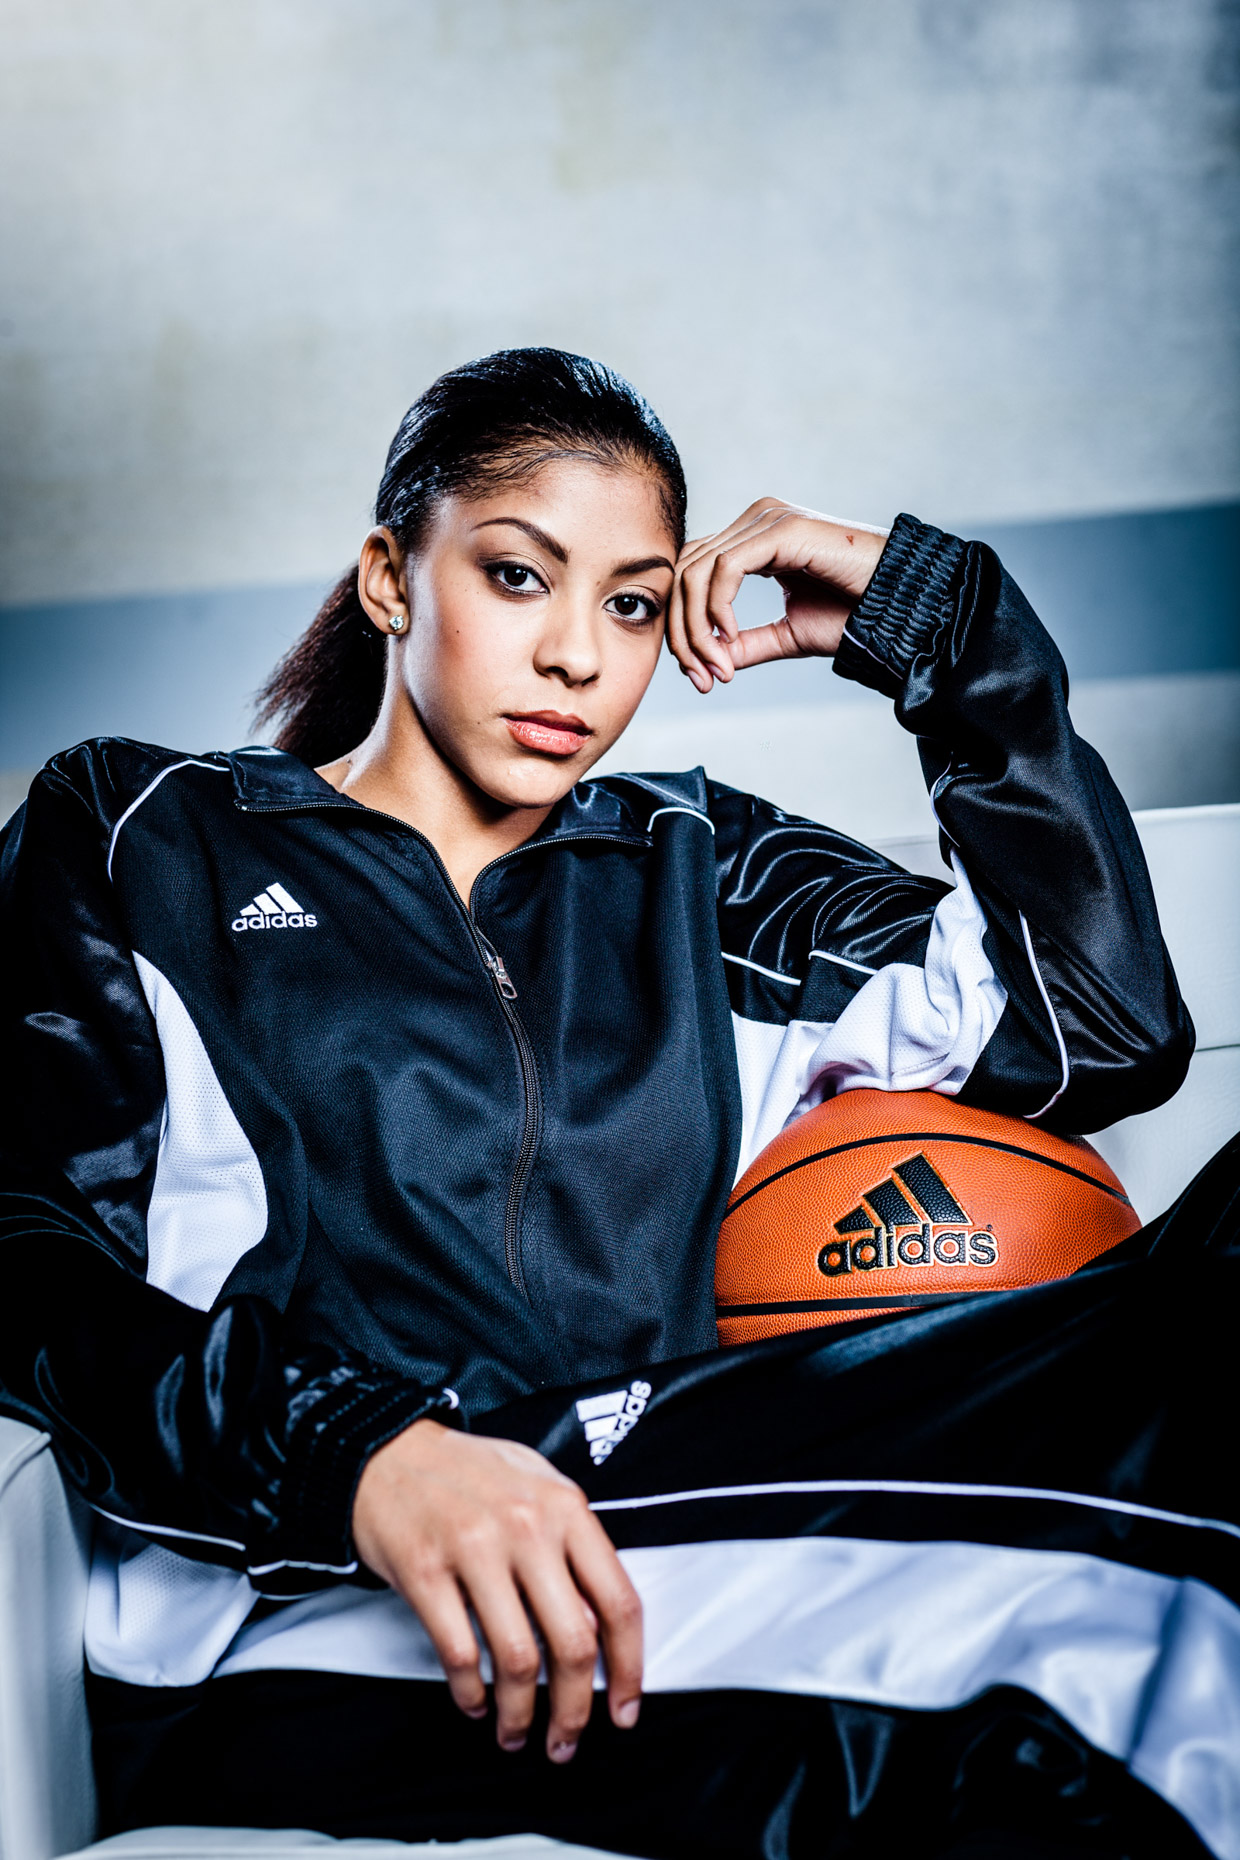 WNBA basketball player Candace Parker for adidas by dramatic portrait photographer Andy Batt